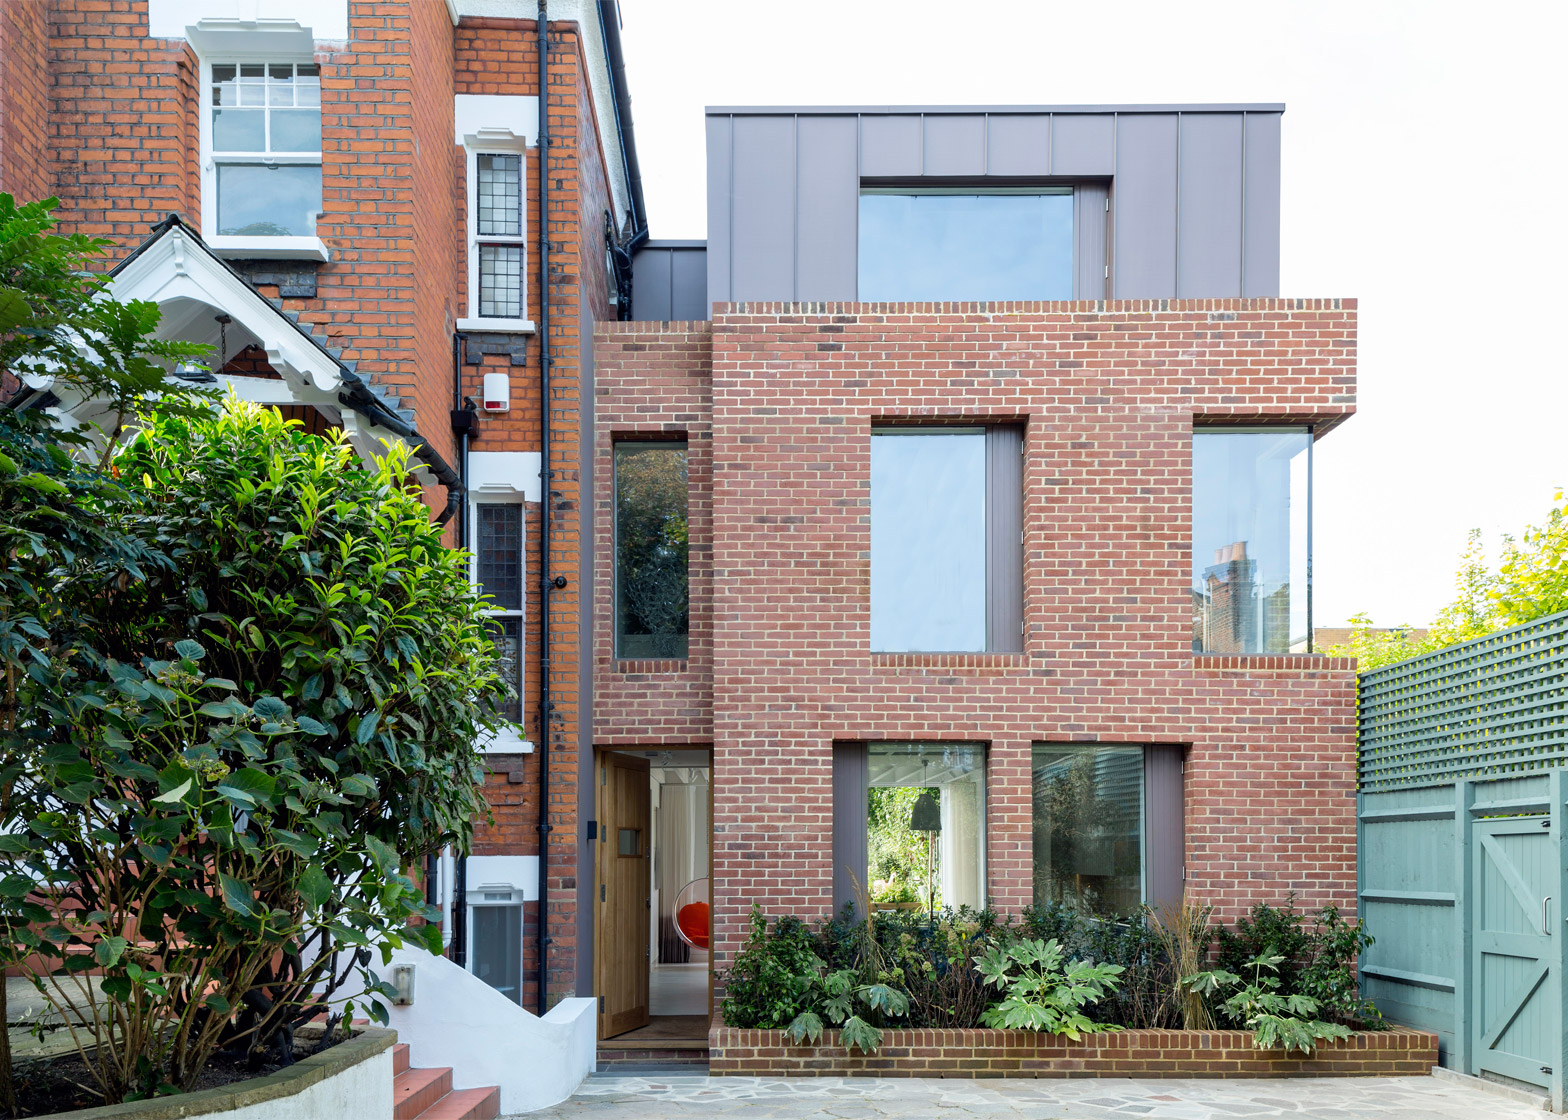 House extension on Coolhurst Road by Alexander Martin Architects